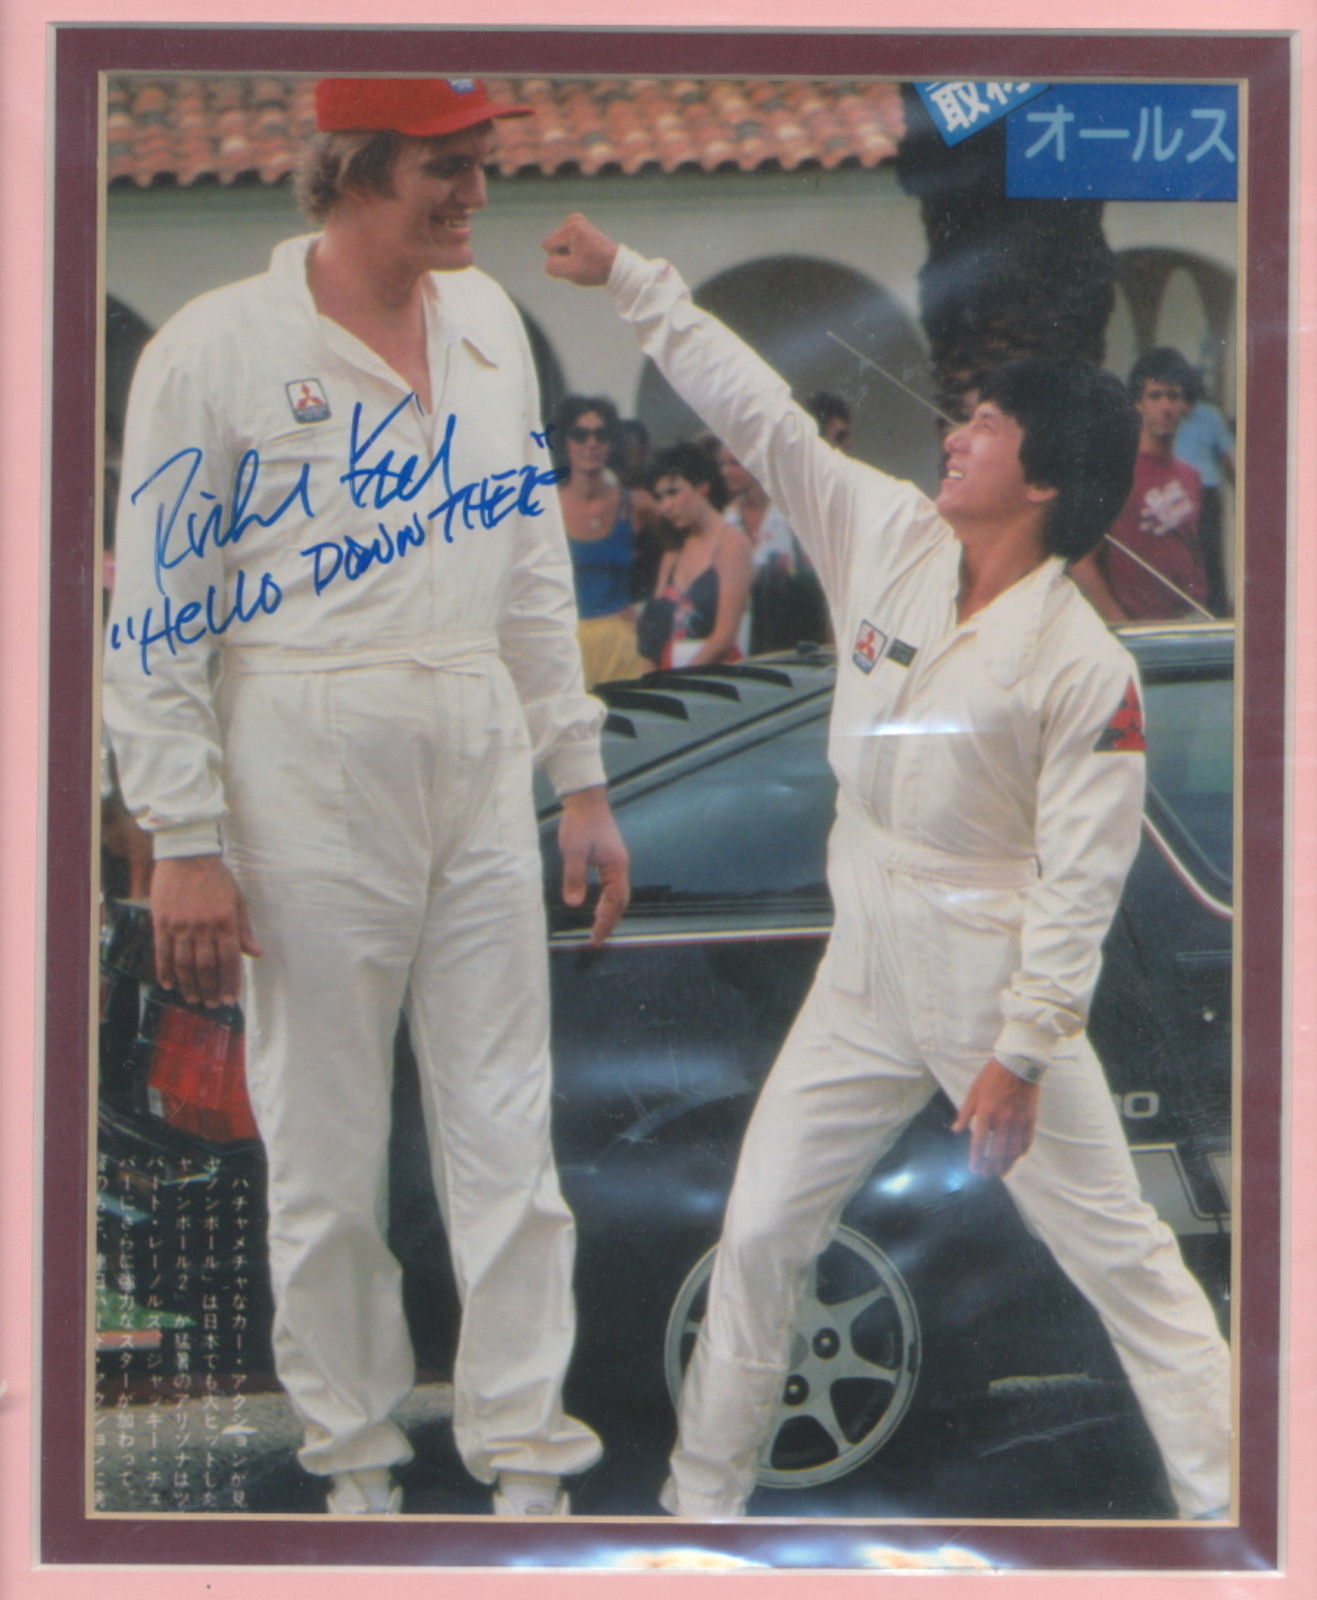 Primary image for Richard Kiel signed photo. Shown w/Jackie Chan. Beautifully double matted. Class